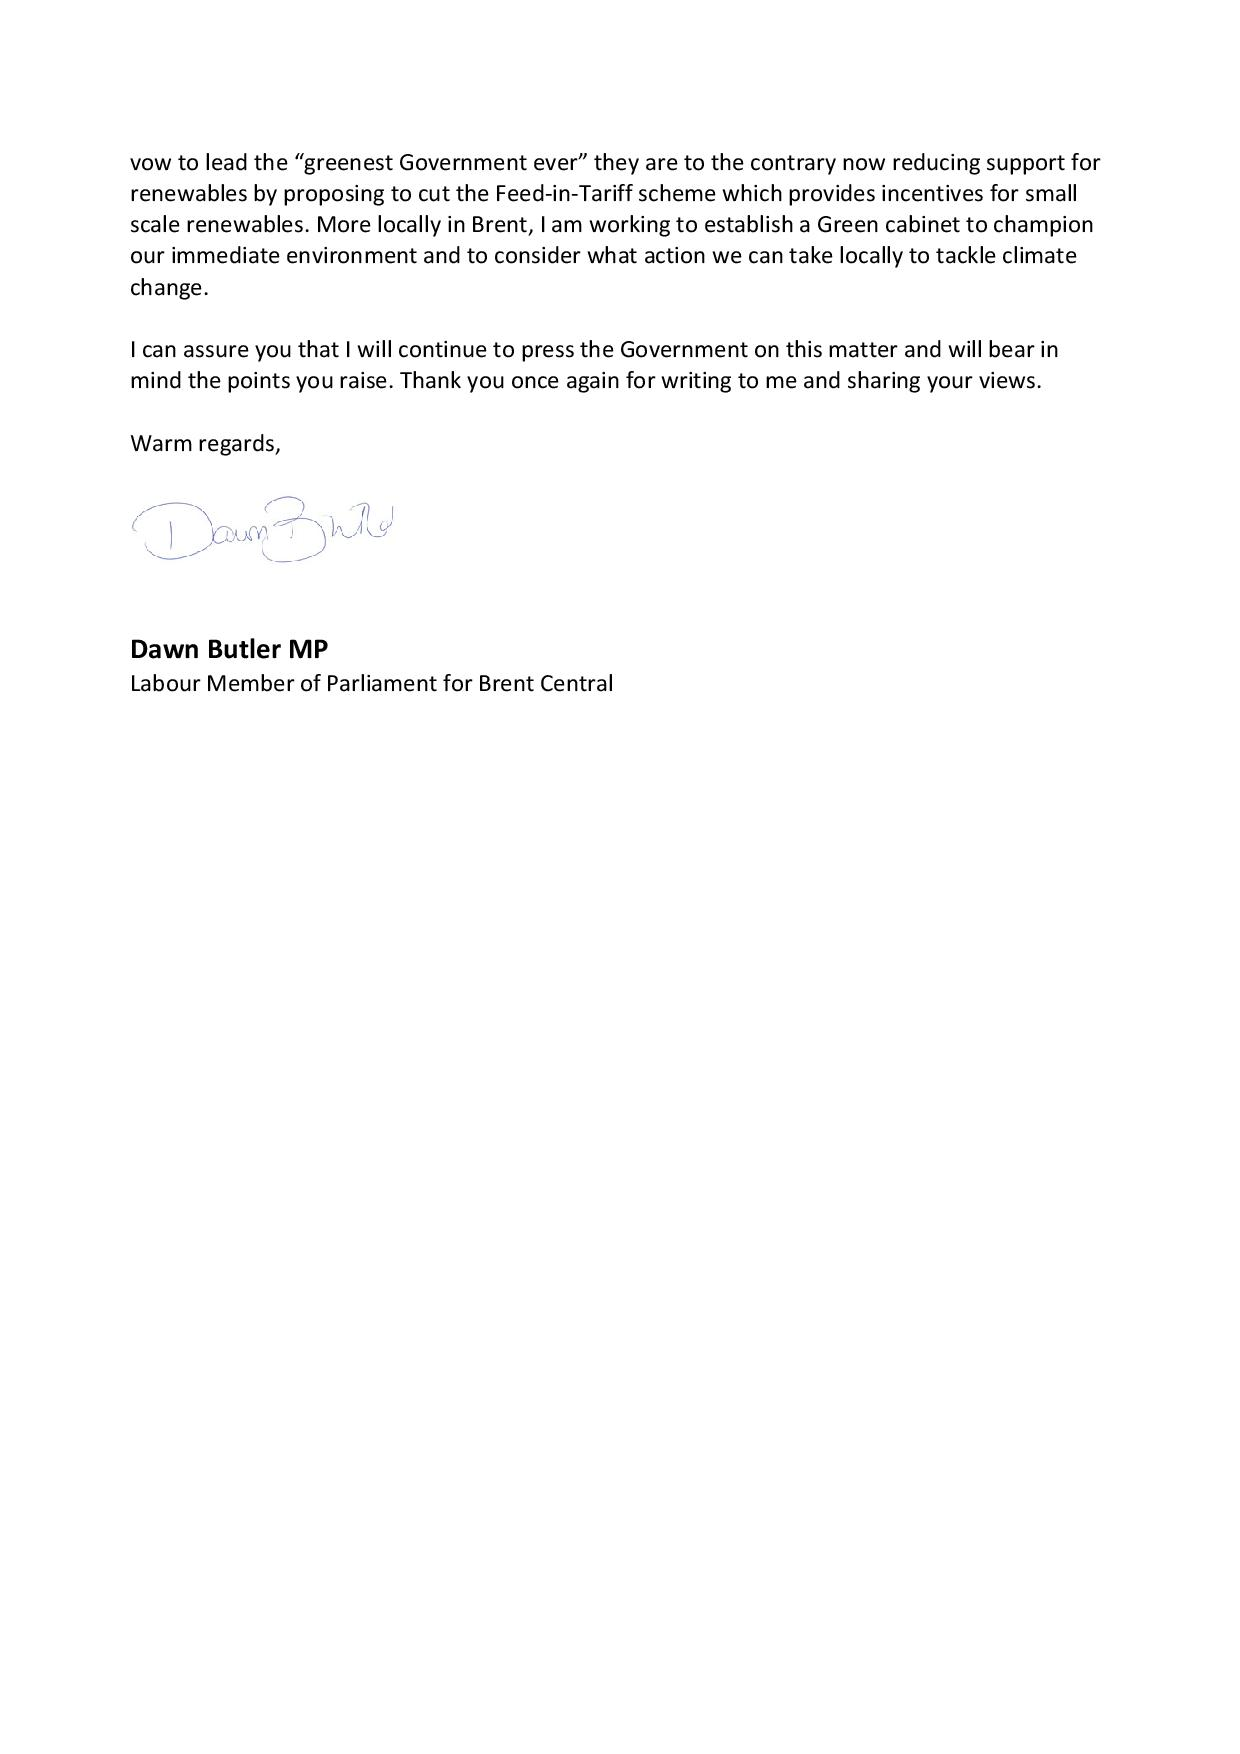 CAFOD_campaign_letter-page-002.jpg